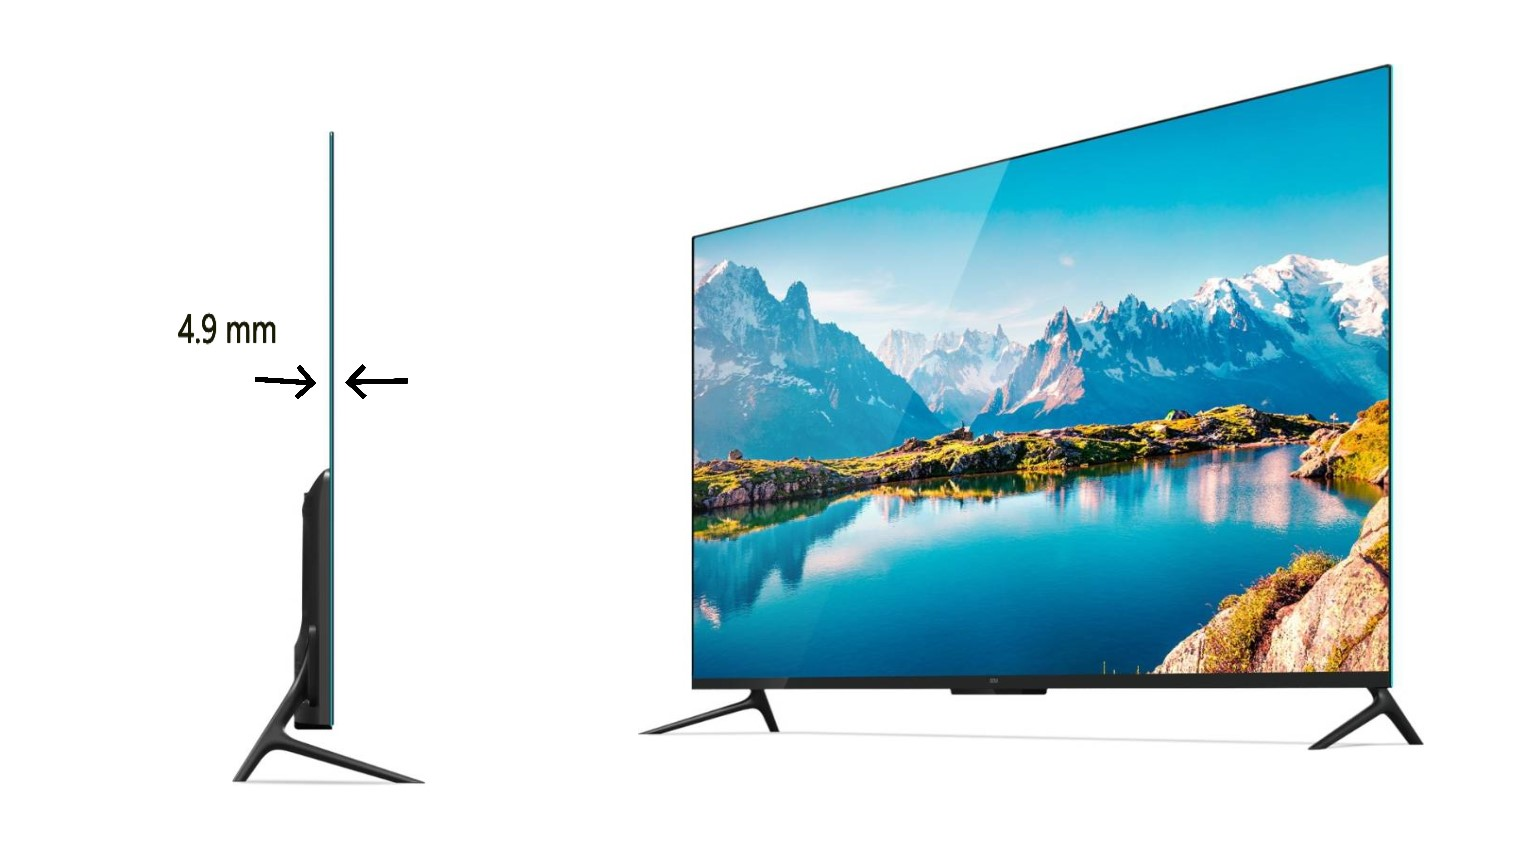 mi 55 inch 4k tv 4 xiaomi s foray into the indian